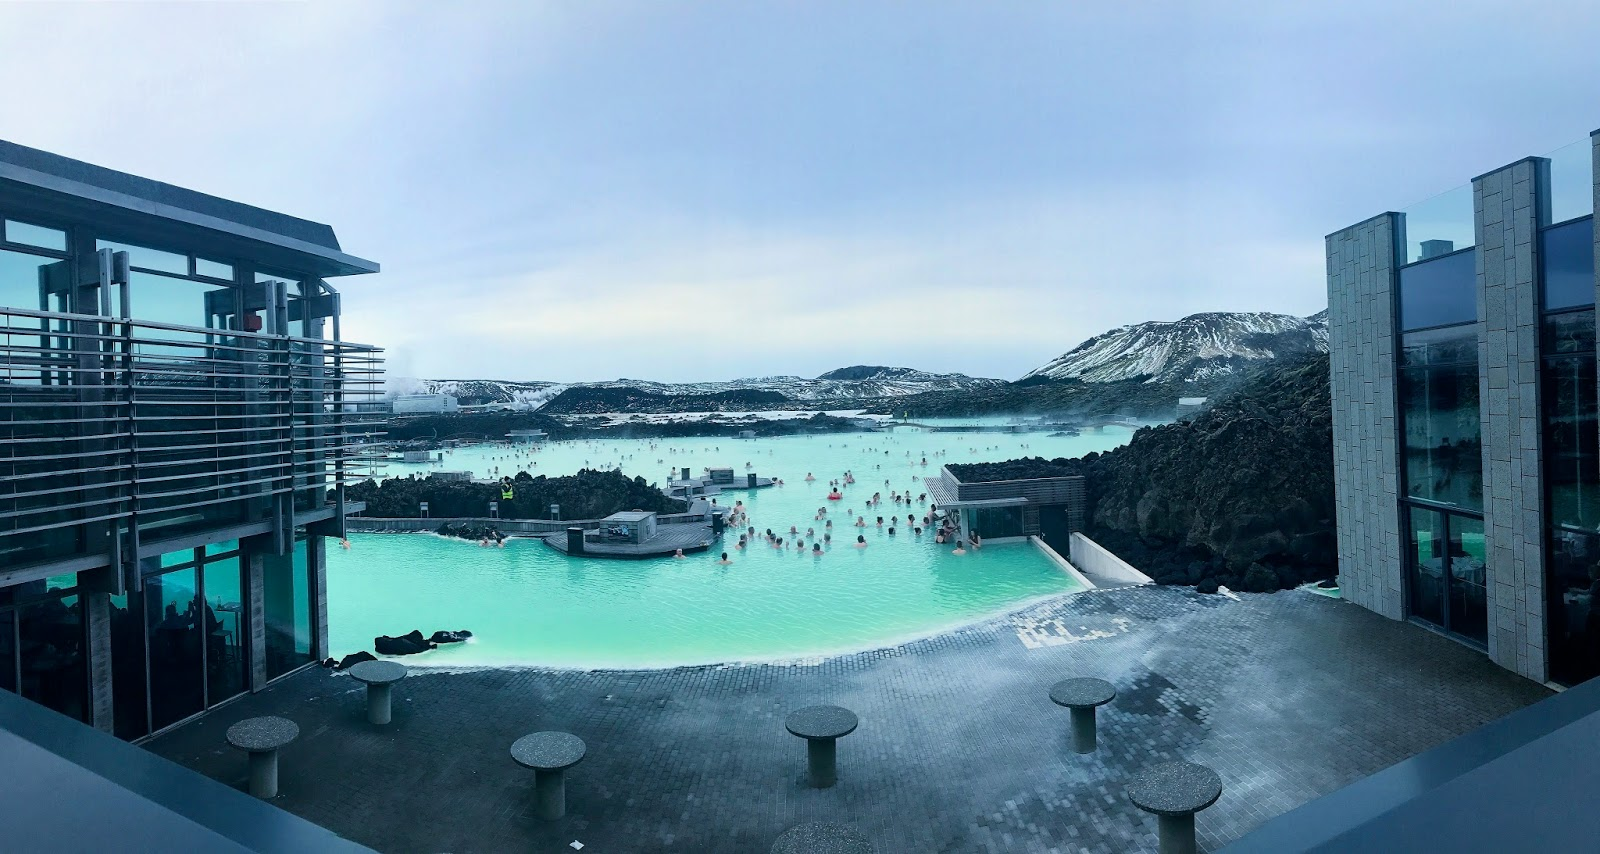 Blue lagoon iceland glossaholic for Blue lagoon iceland accommodation